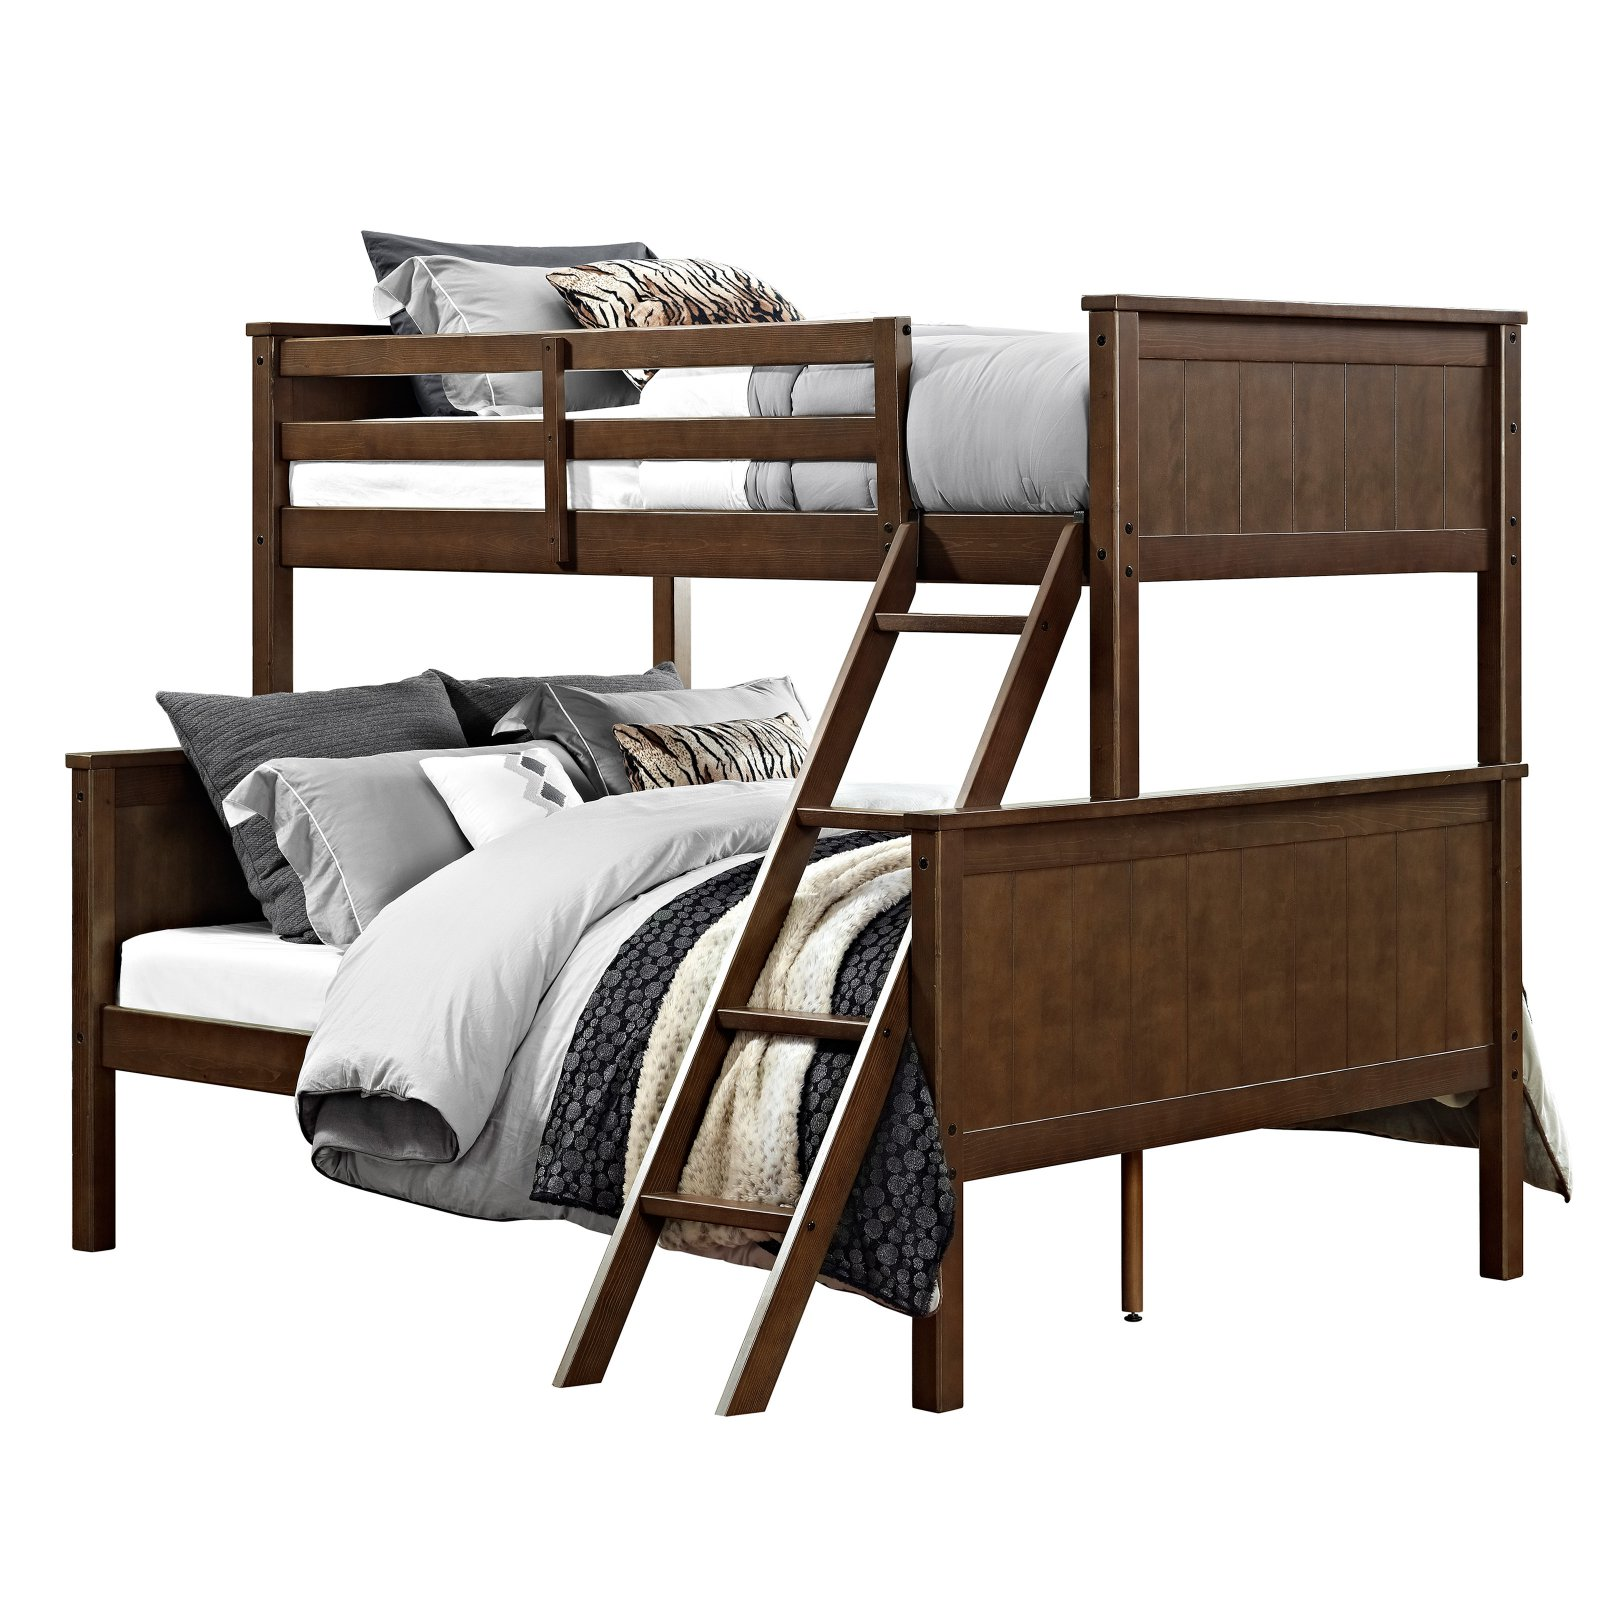 Dorel Living Maxton Twin over Full Bunk Bed - Mocha